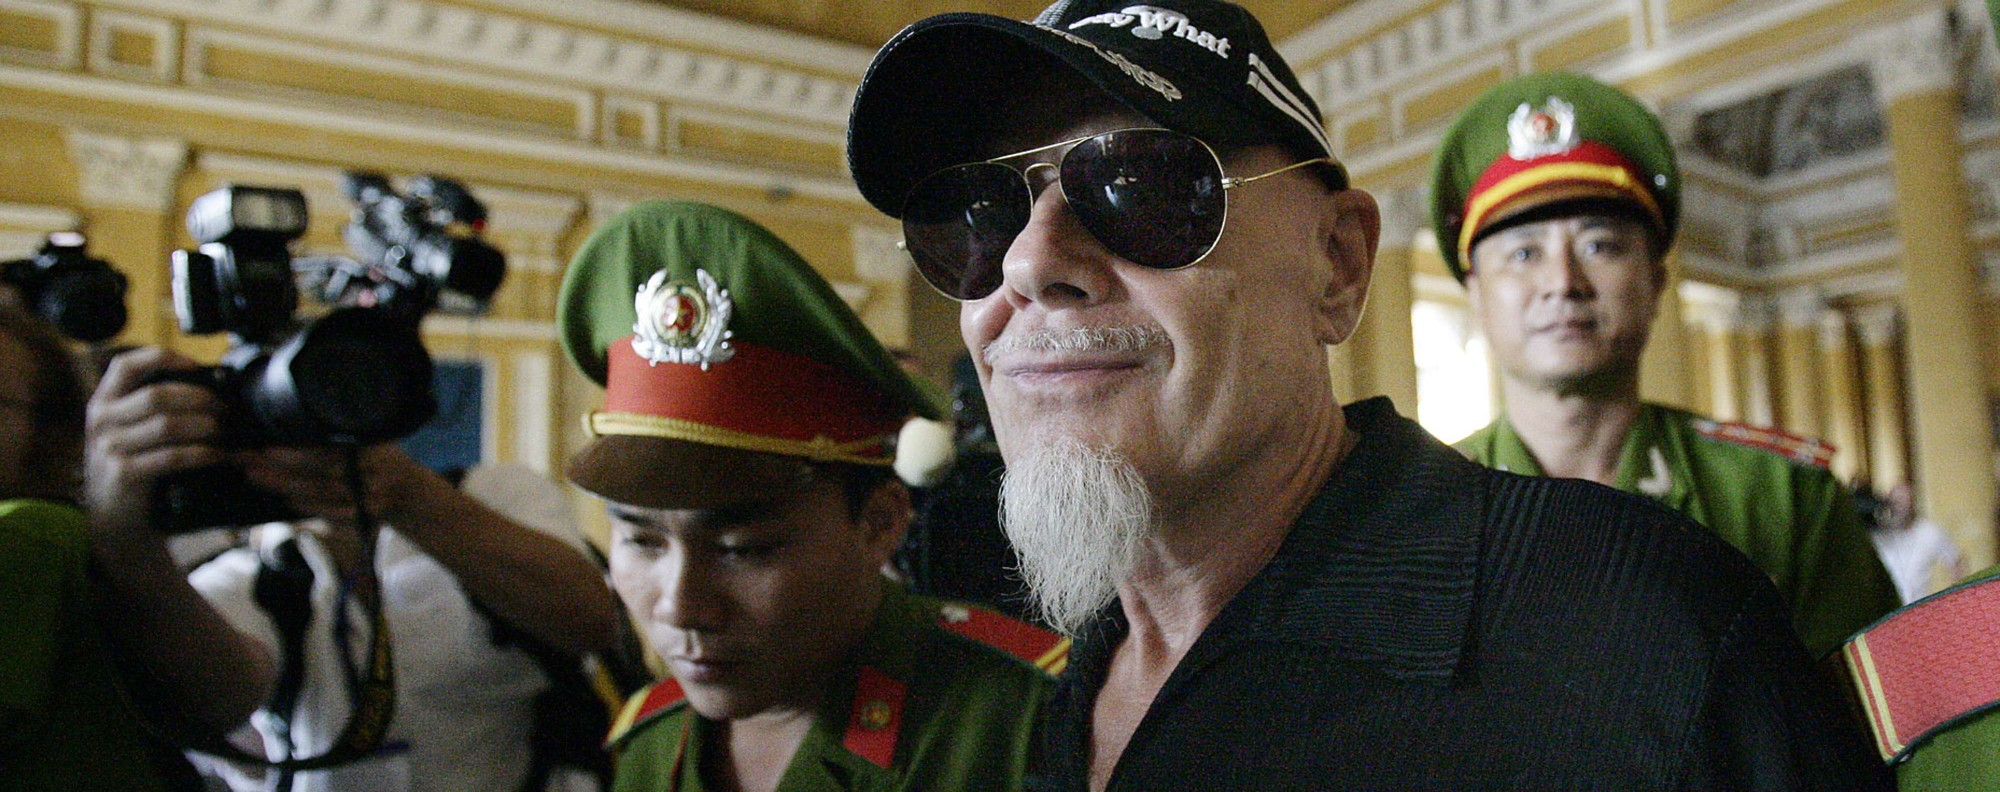 Gary Glitter in Vietnam after his expulsion from Cambodia. Photo: AFP